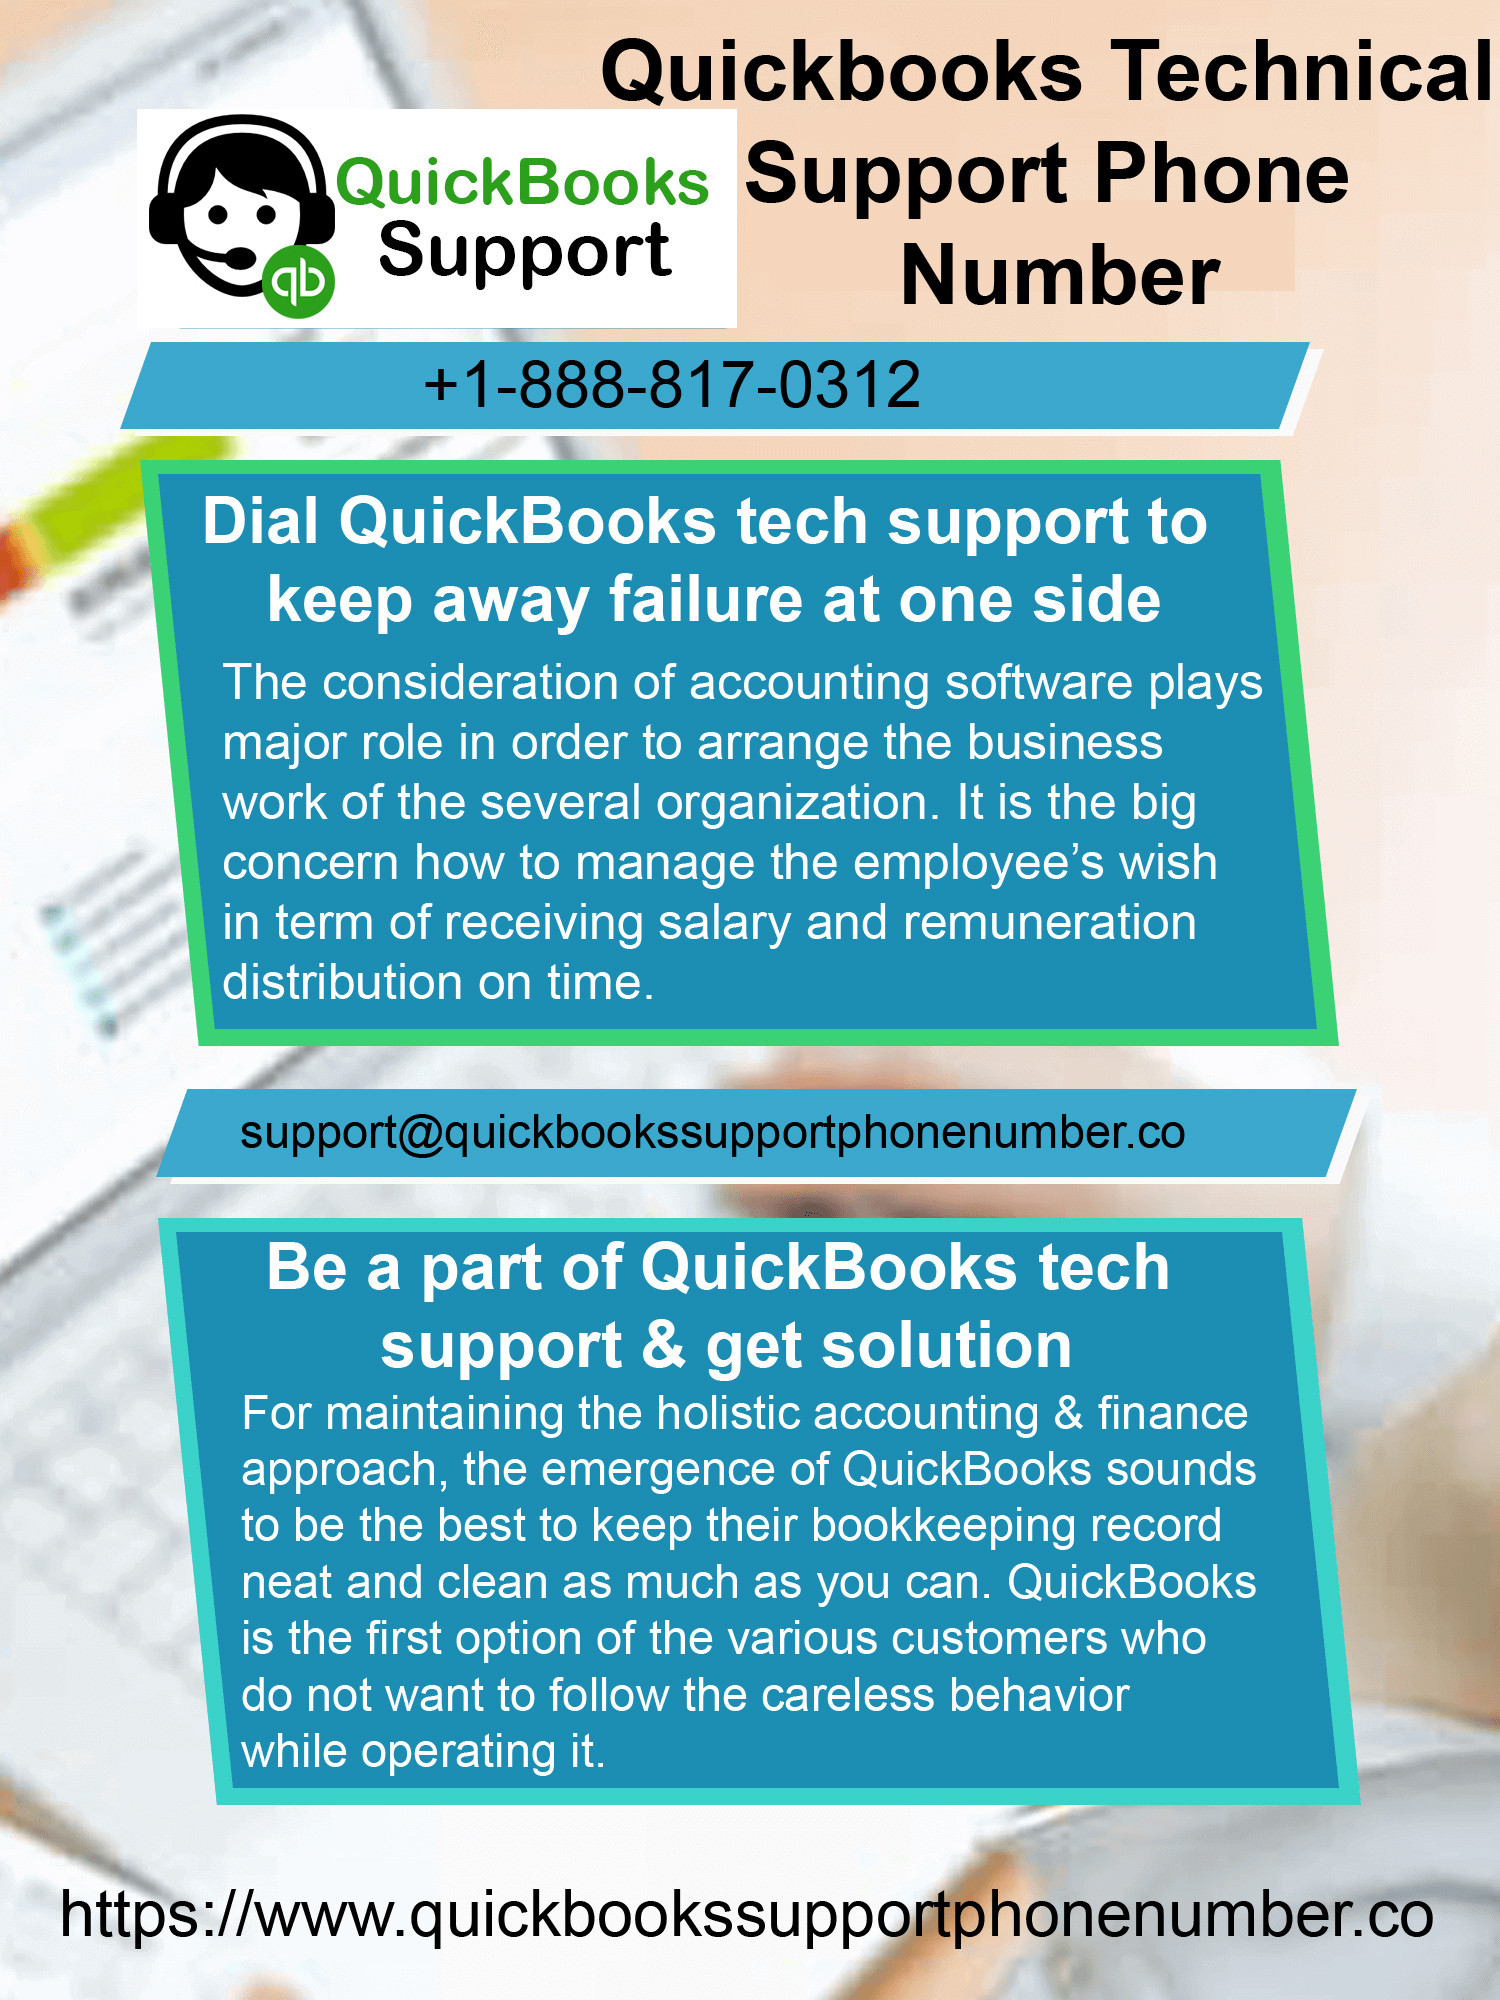 Quickbooks tech support phone number Infographic